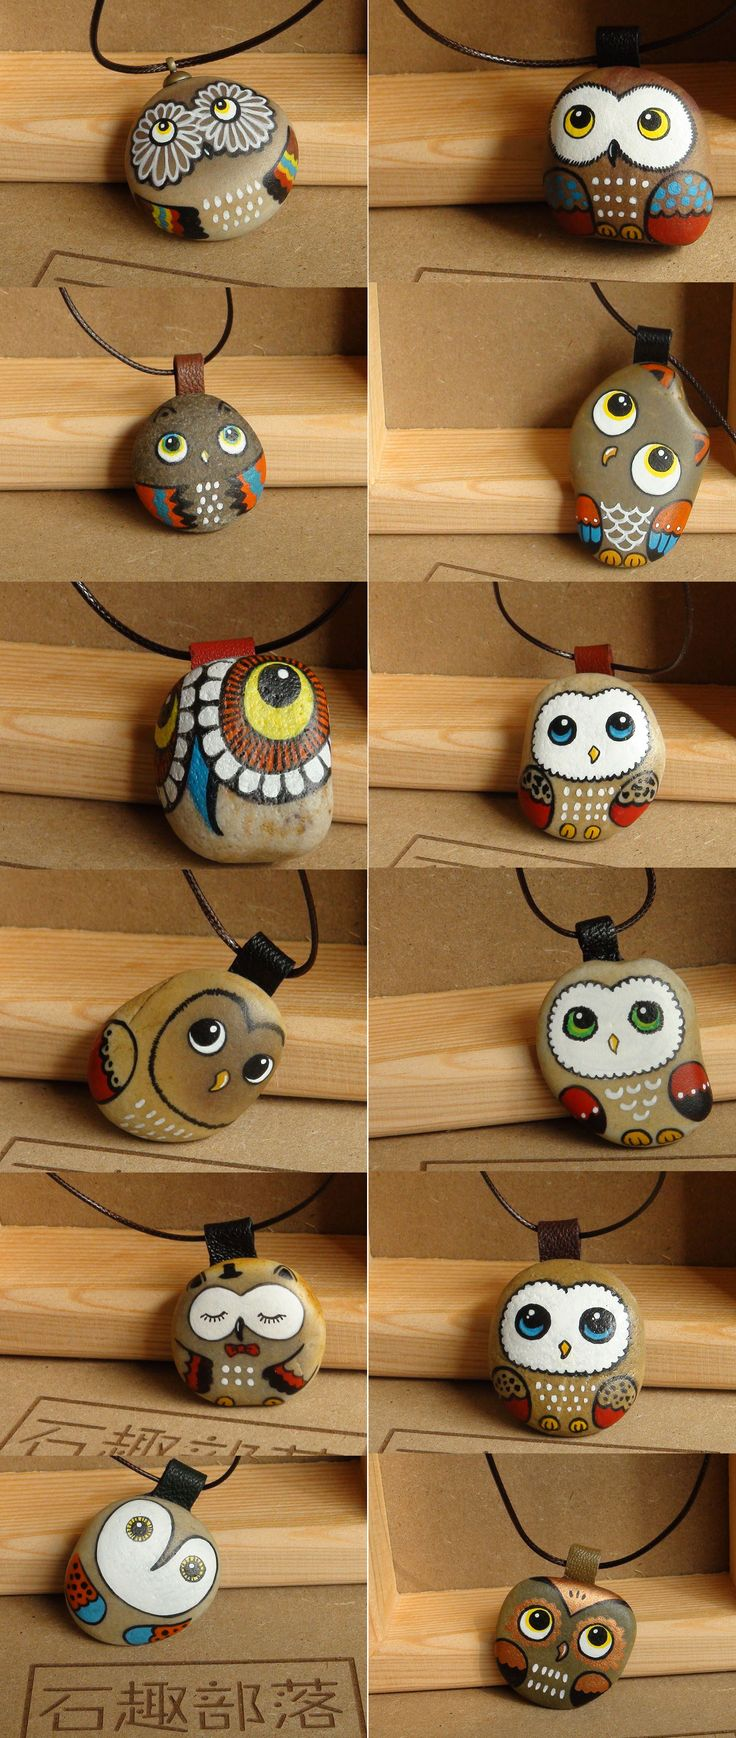 Owl Painted stones -the cutest thing! A definite improvement to the strawberry ones I have seen before